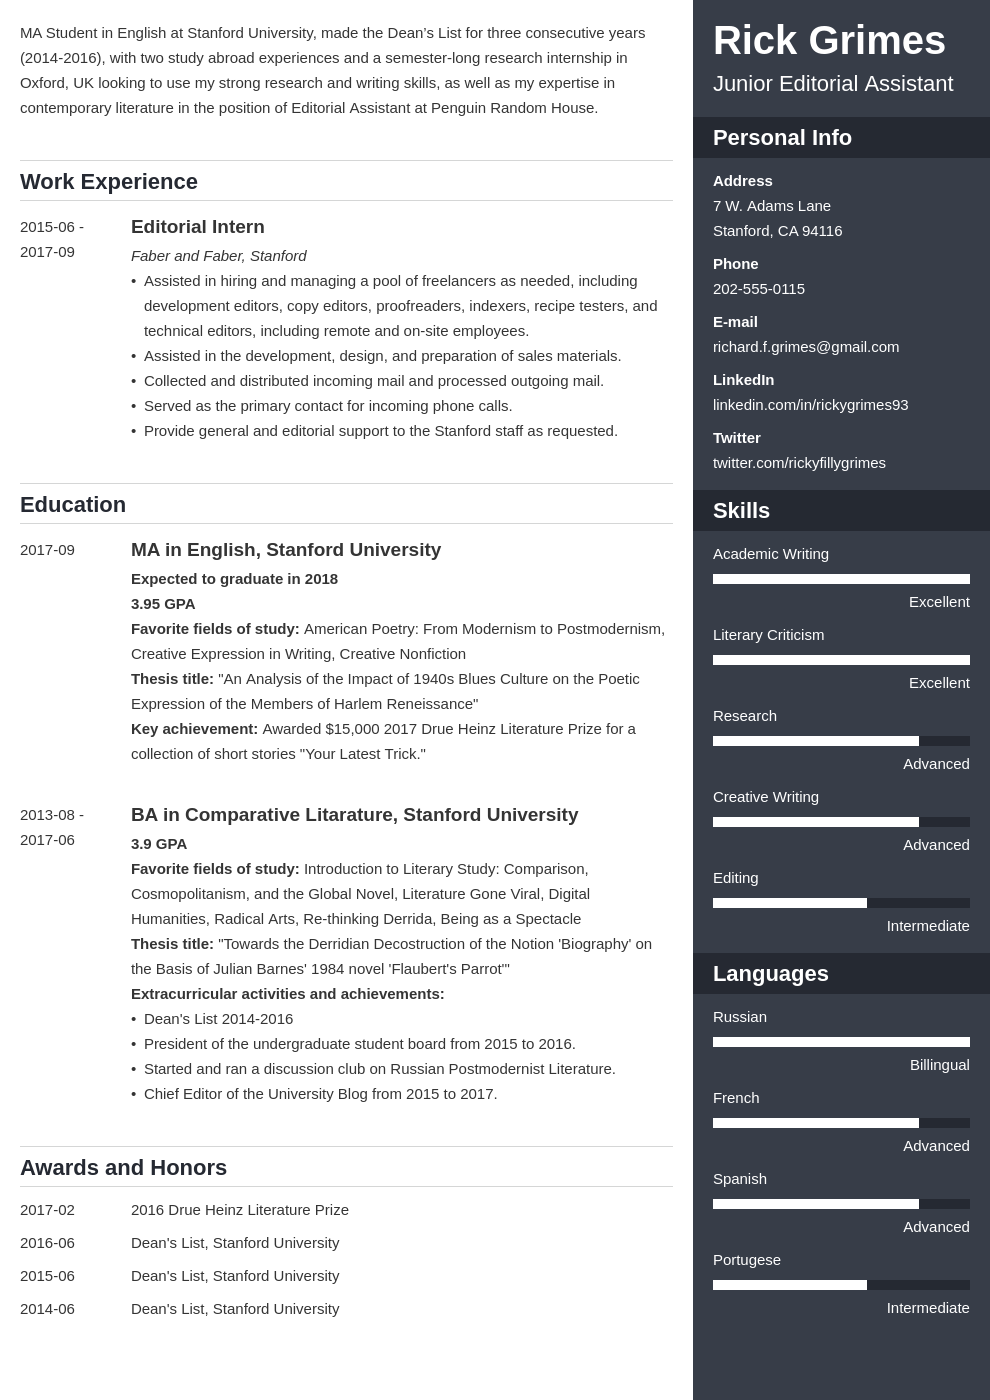 Student Resume Sample & Complete Writing Guide [with 20+ Examples]